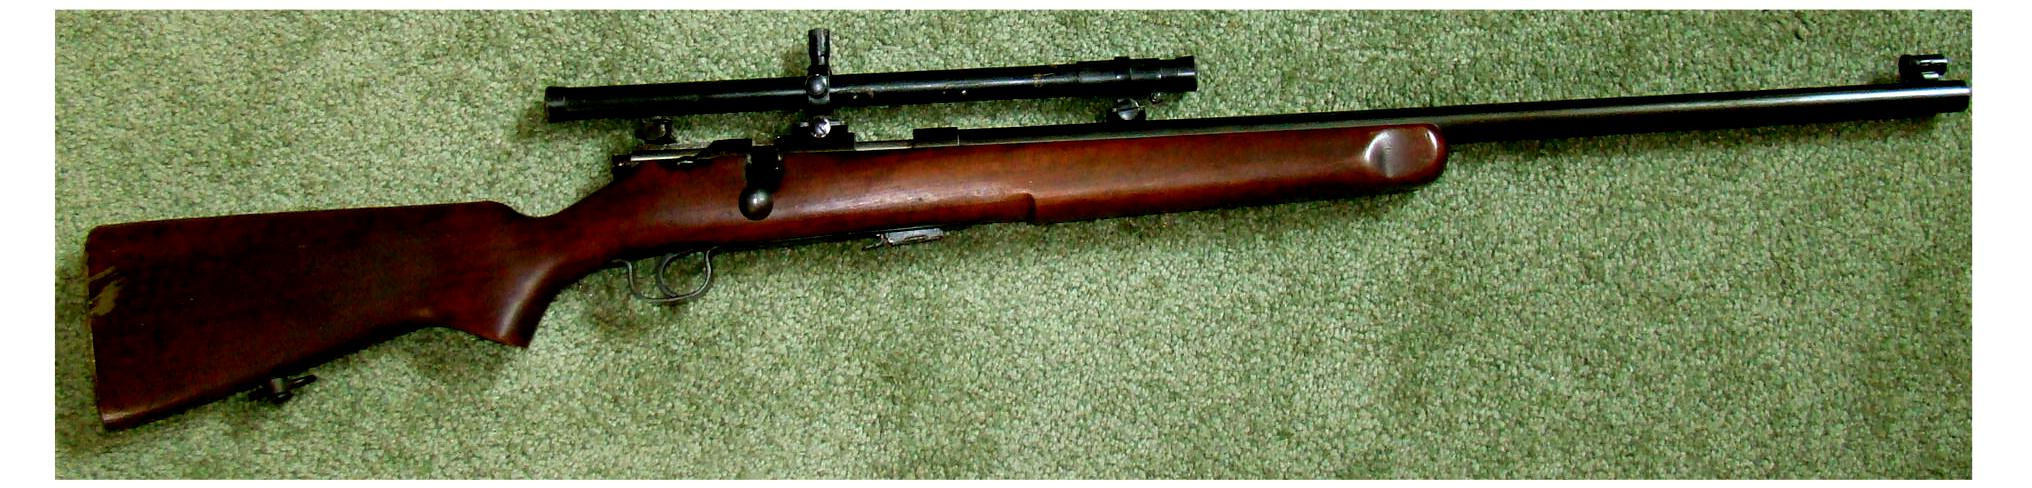 Click image for larger version.  Name:gun pic's (14).JPG Views:24 Size:201.5 KB ID:369427